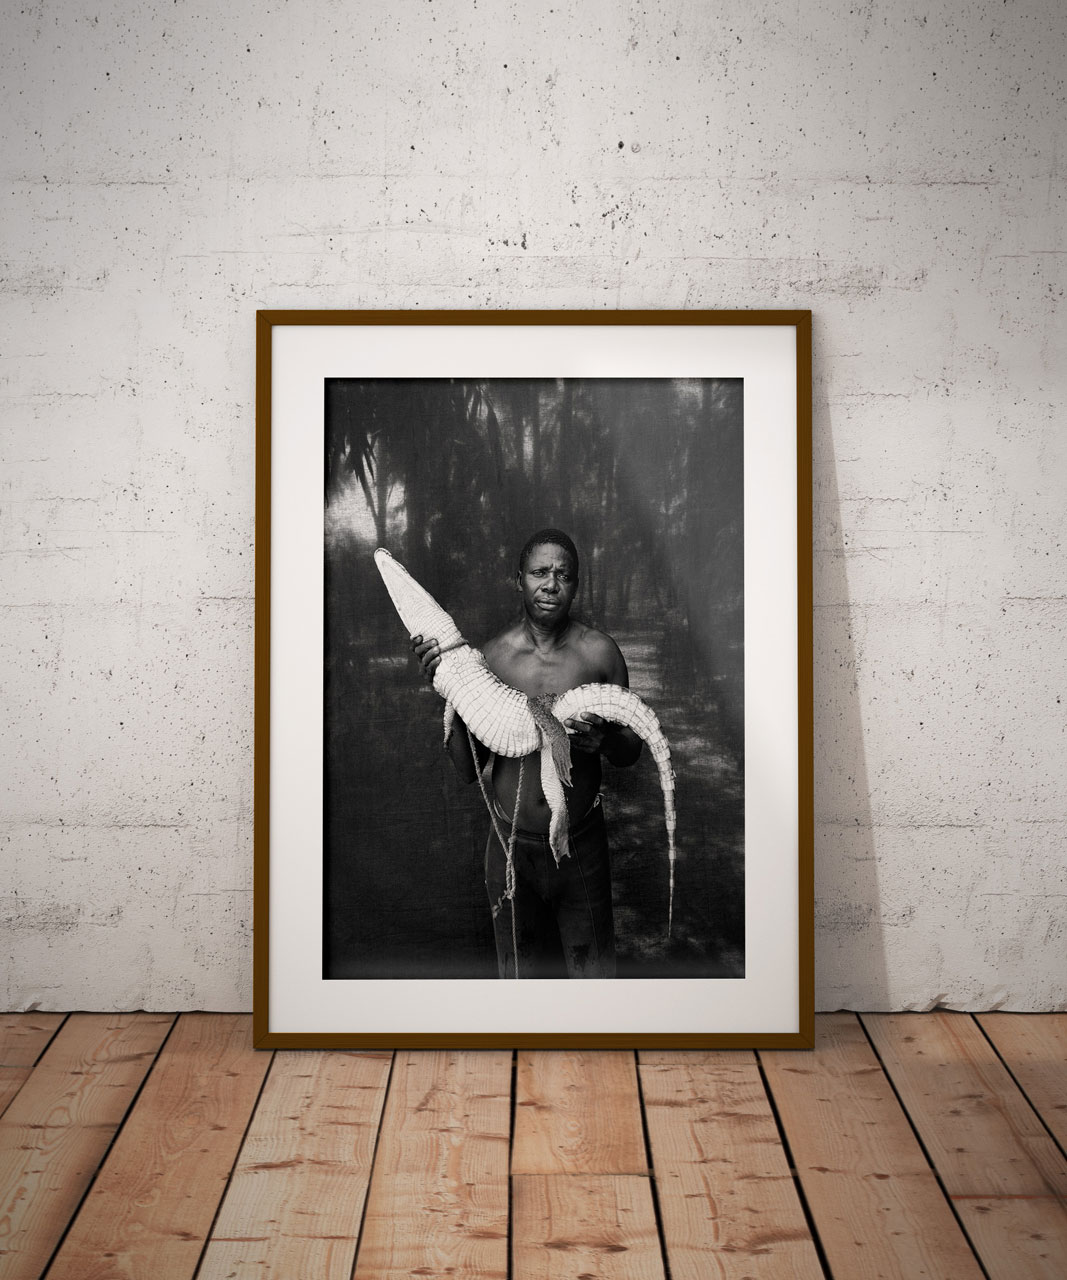 ©Jason Florio. BW framed print - portrait 'Abdou with Rescued Crocodile' Gambia, West Africa